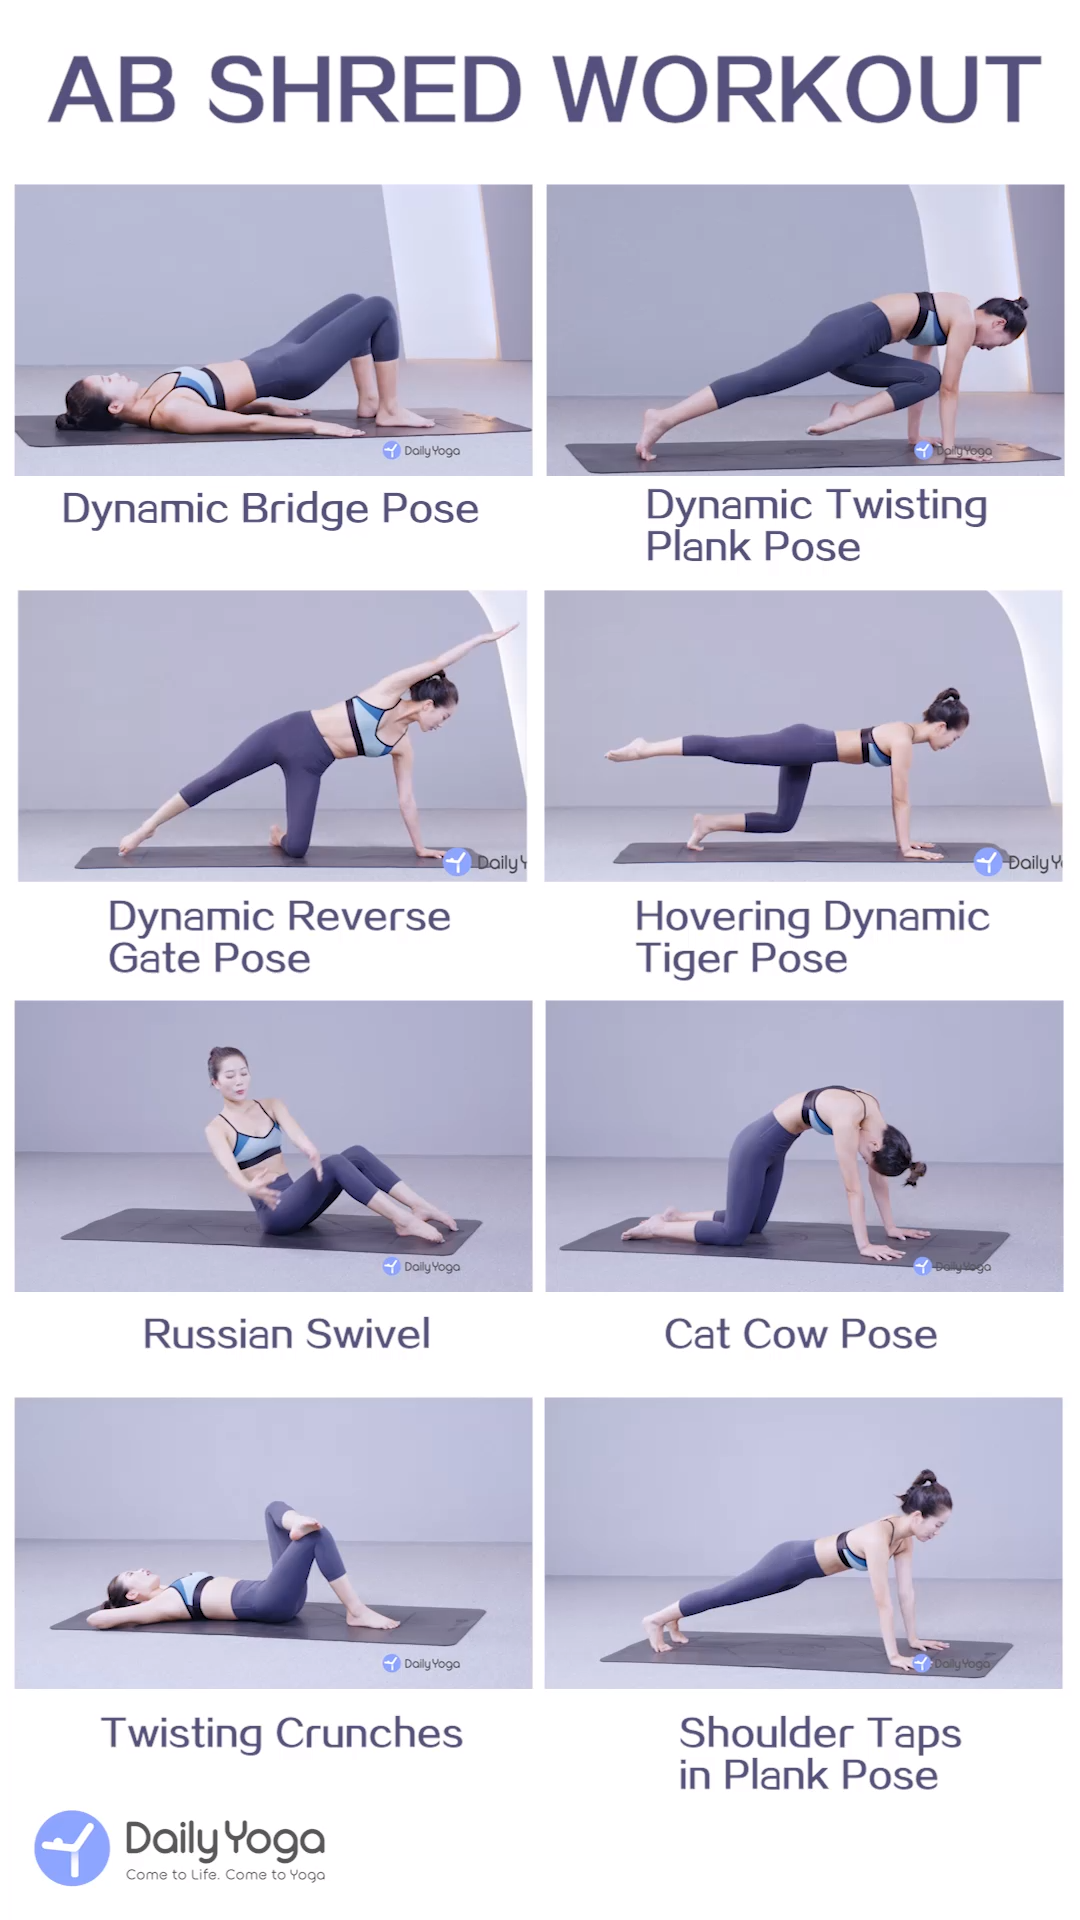 Shred abs and lengthen your body with this ab sculpting workouts. #fitness training videos DailyYoga...